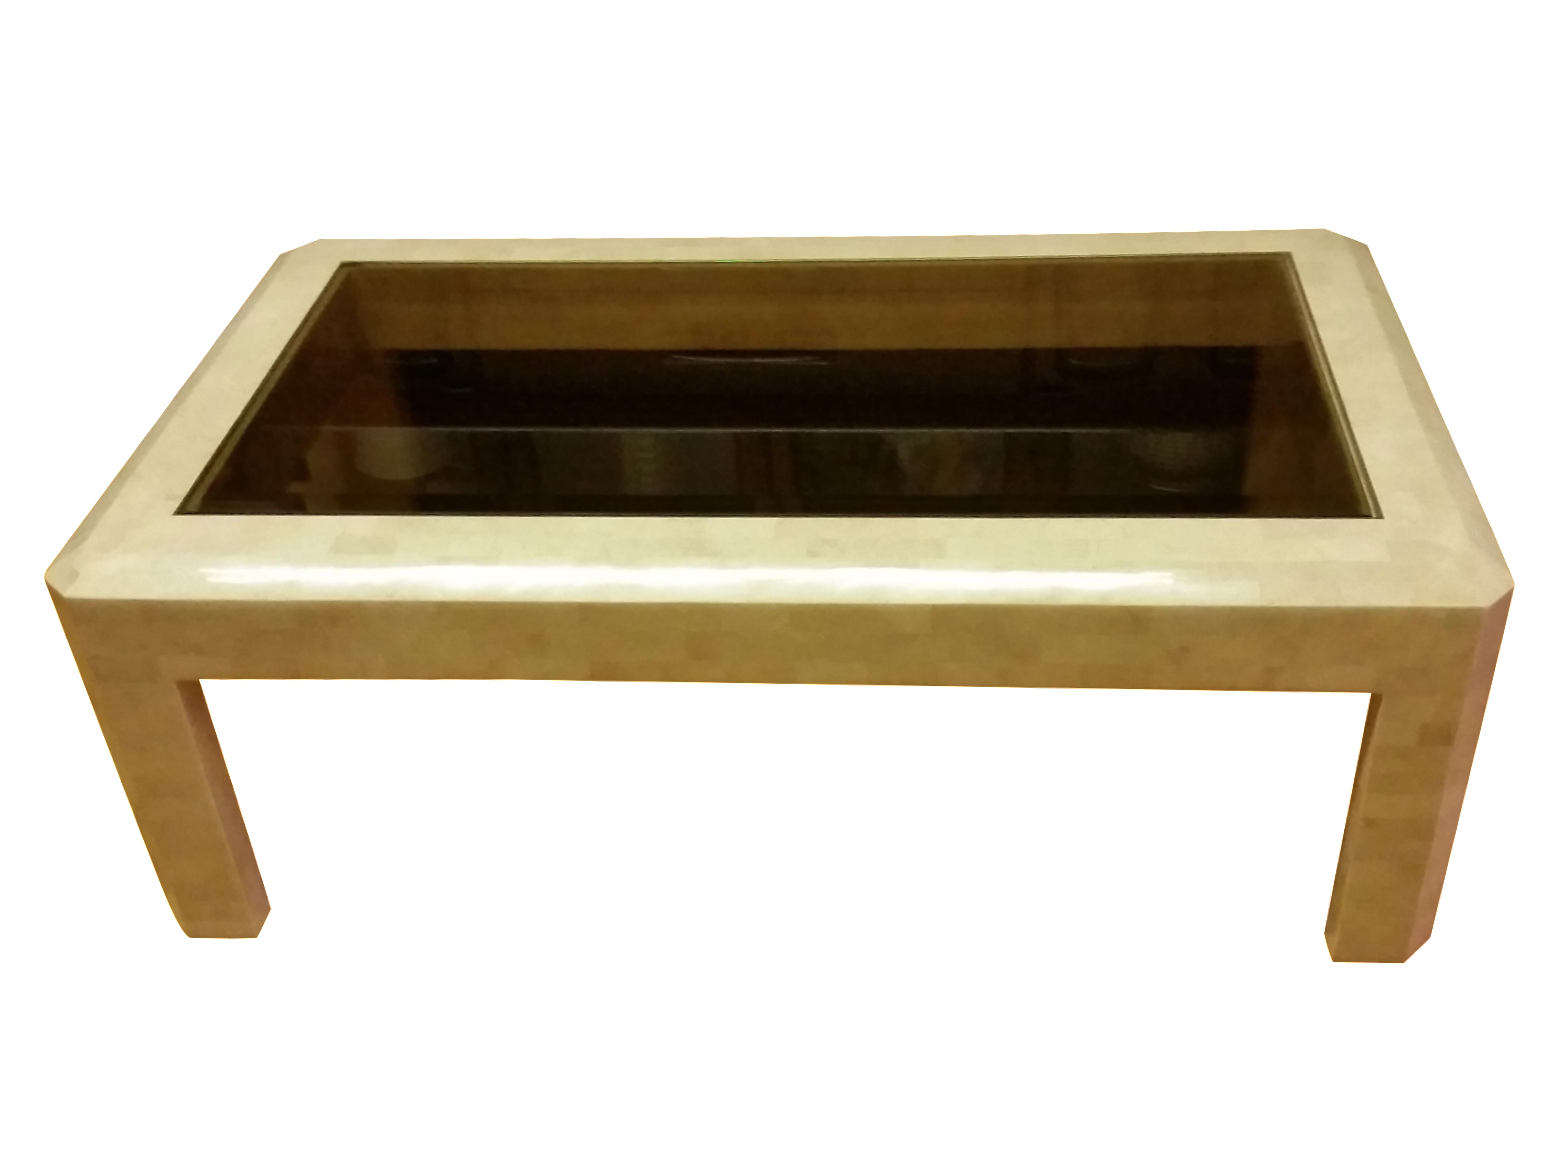 Image of Maitland-Smith Tessellated Stone Coffee Table - Maitland-Smith Tessellated Stone Coffee Table Chairish